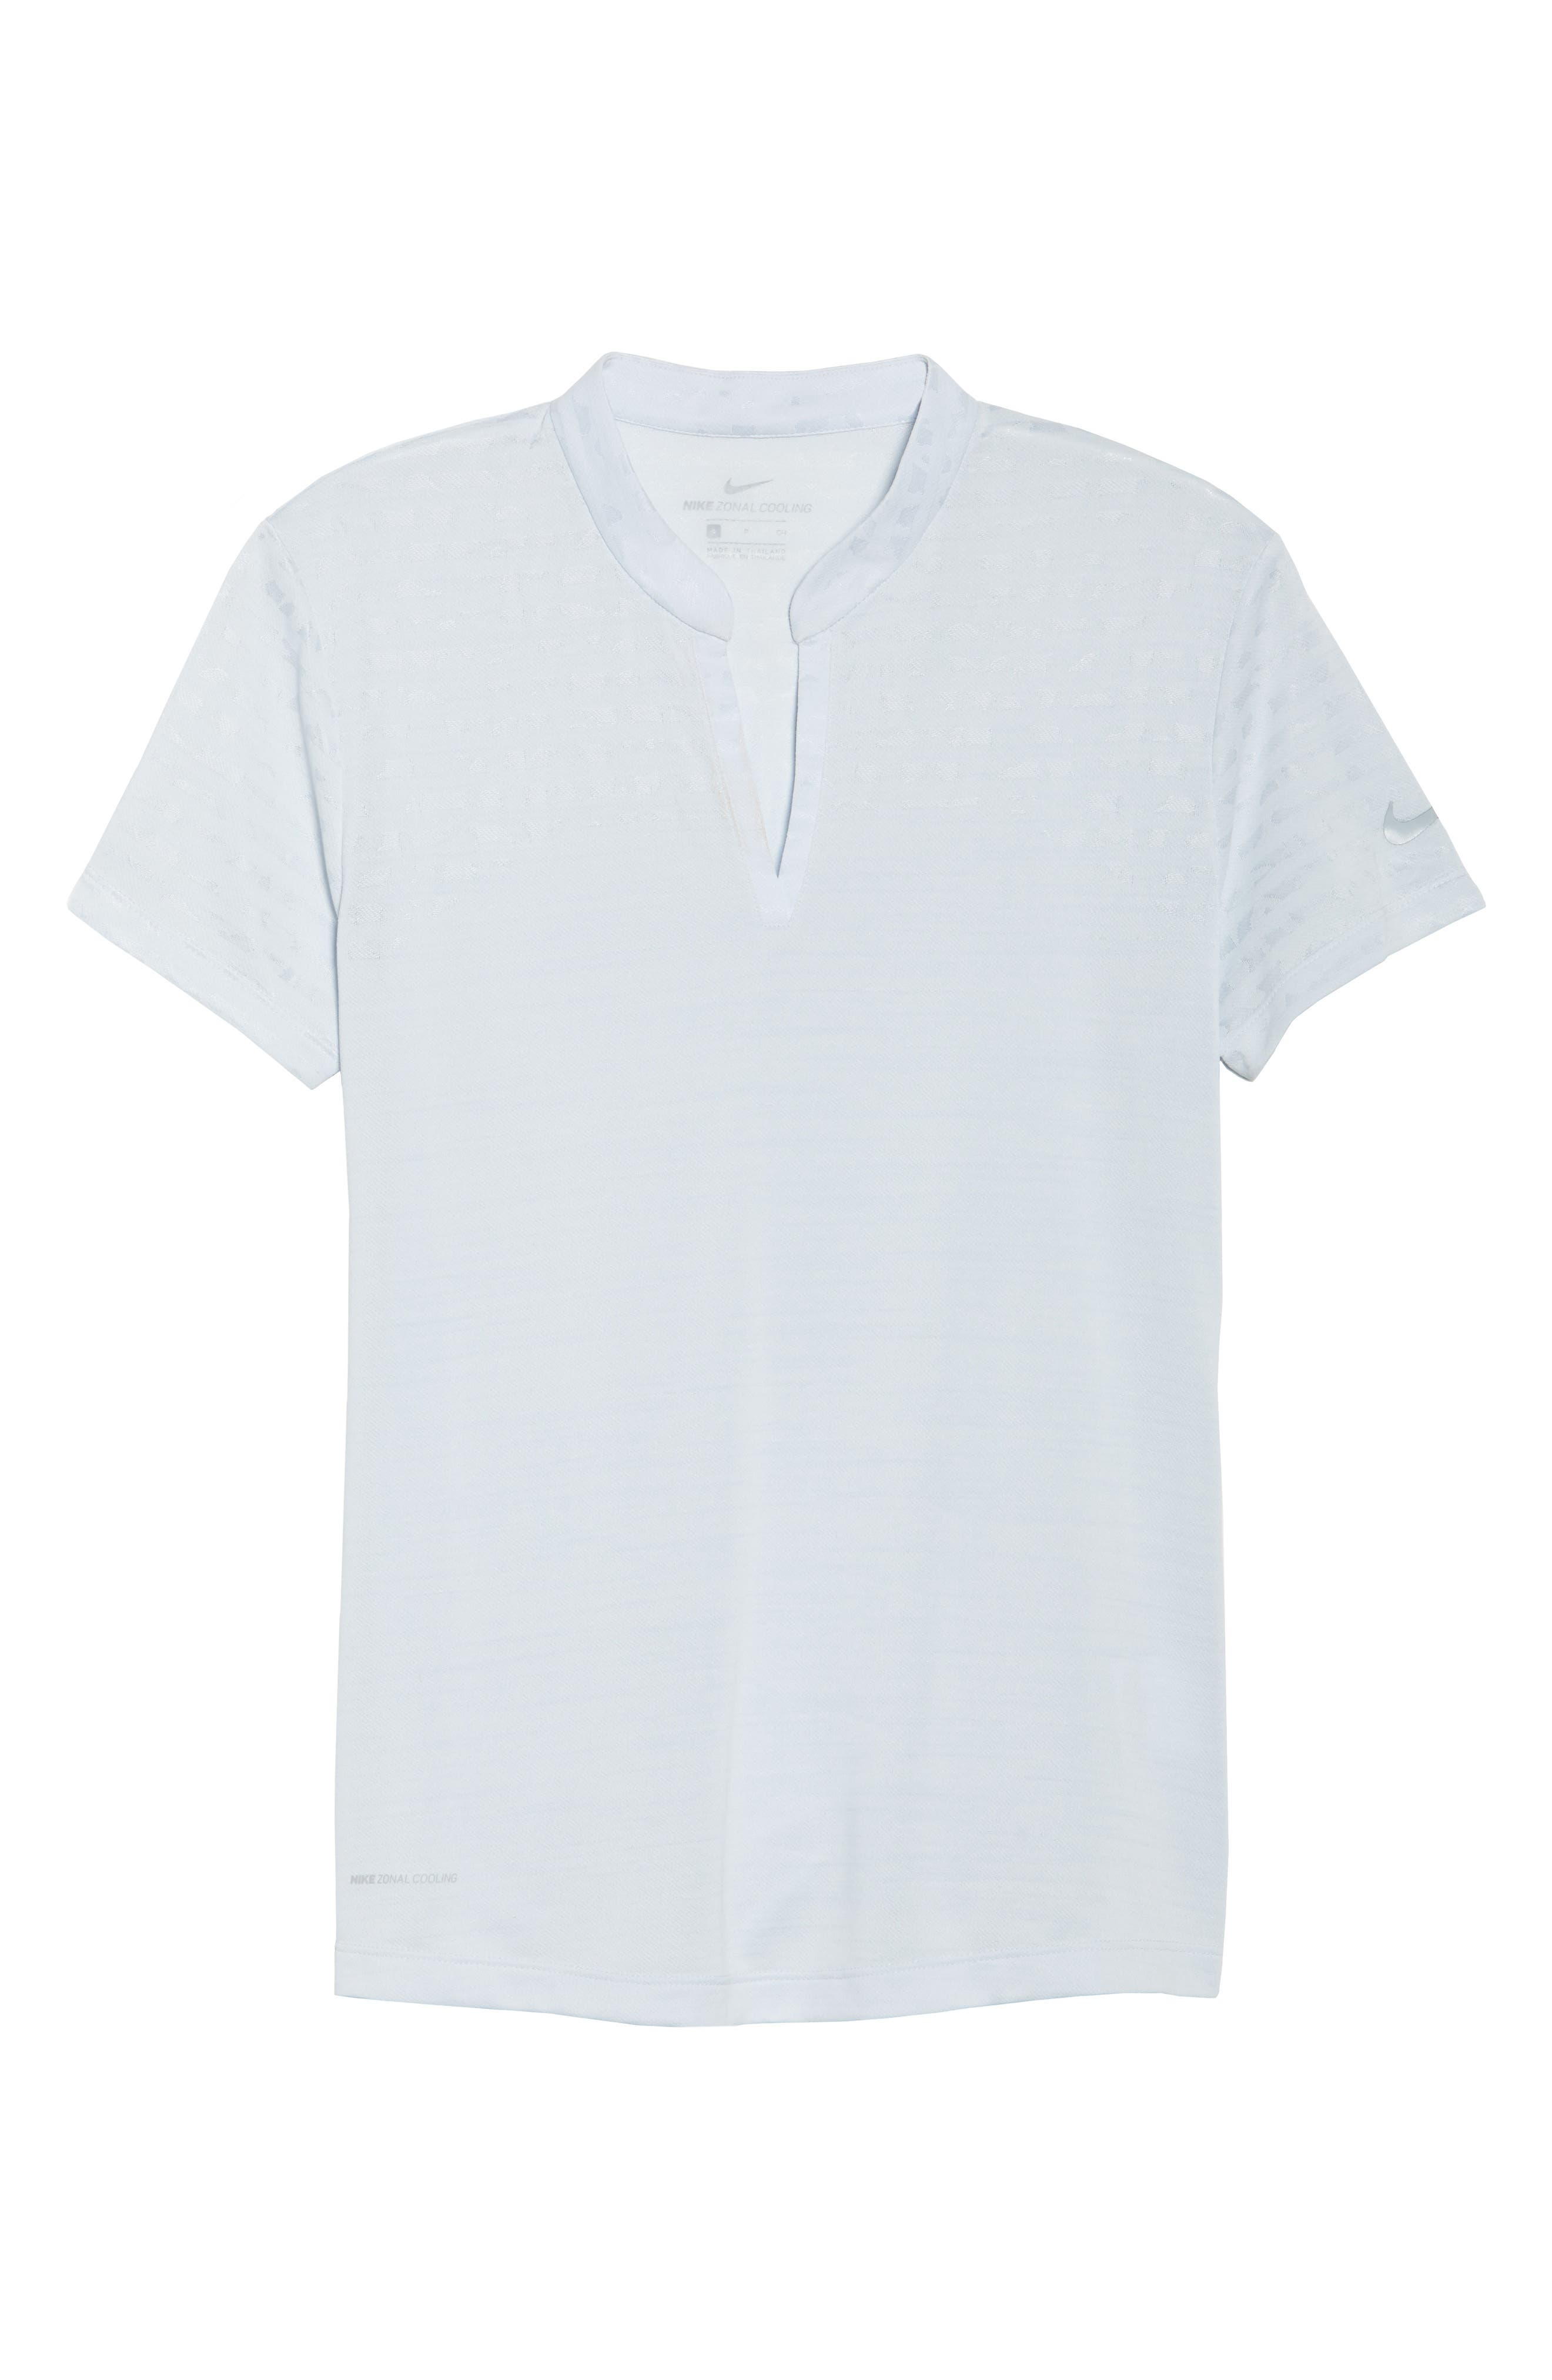 Zonal Cooling Golf Polo,                             Alternate thumbnail 7, color,                             Pure Platinum/ Silver